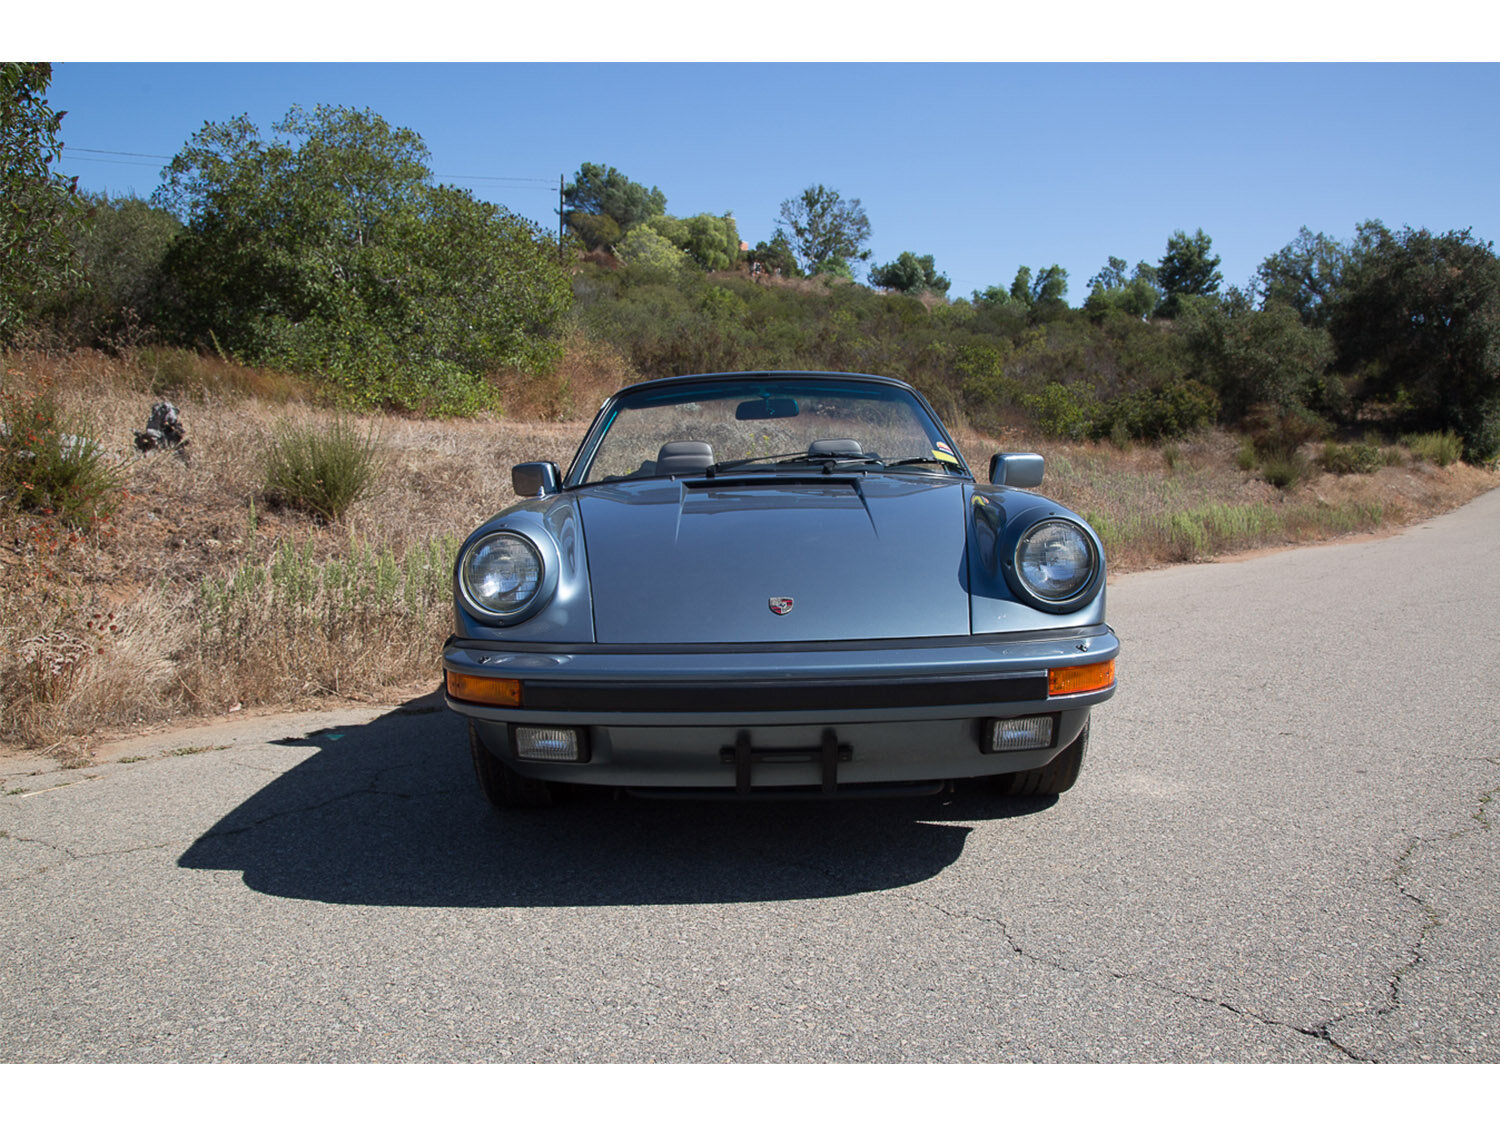 1984-carrera-cabriolet-slate-blue-911-sc-for-sale-makellos-classics_0001s_0000s_0033_1B7A6594.jpg